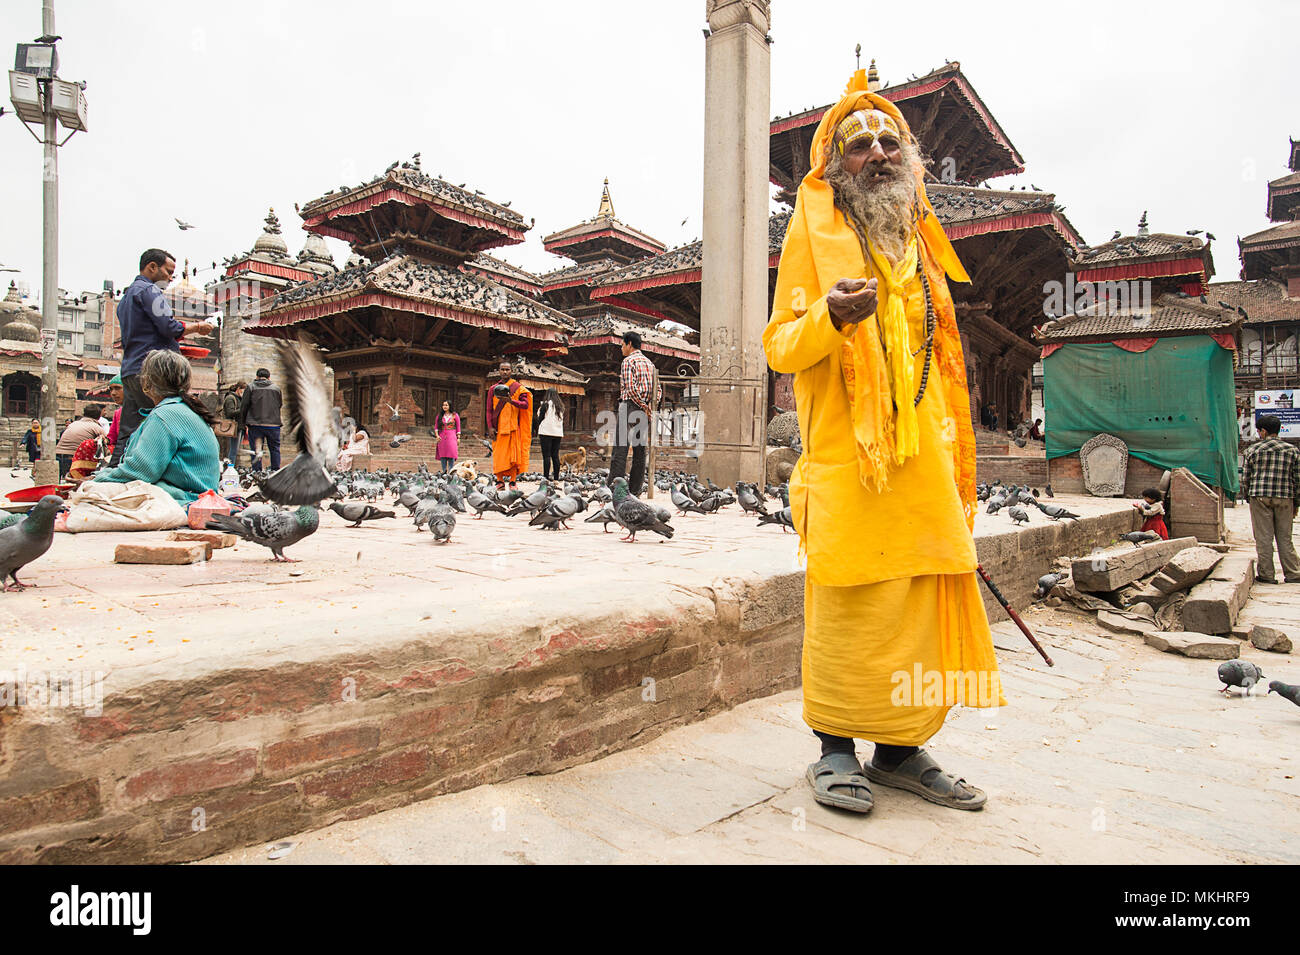 KATHMANDU - NEPAL 08 APRIL 2018. Sadhu in colourful clothes and painted face standing on Durbar Square asking for alms in Kathmandu, Nepal. Stock Photo